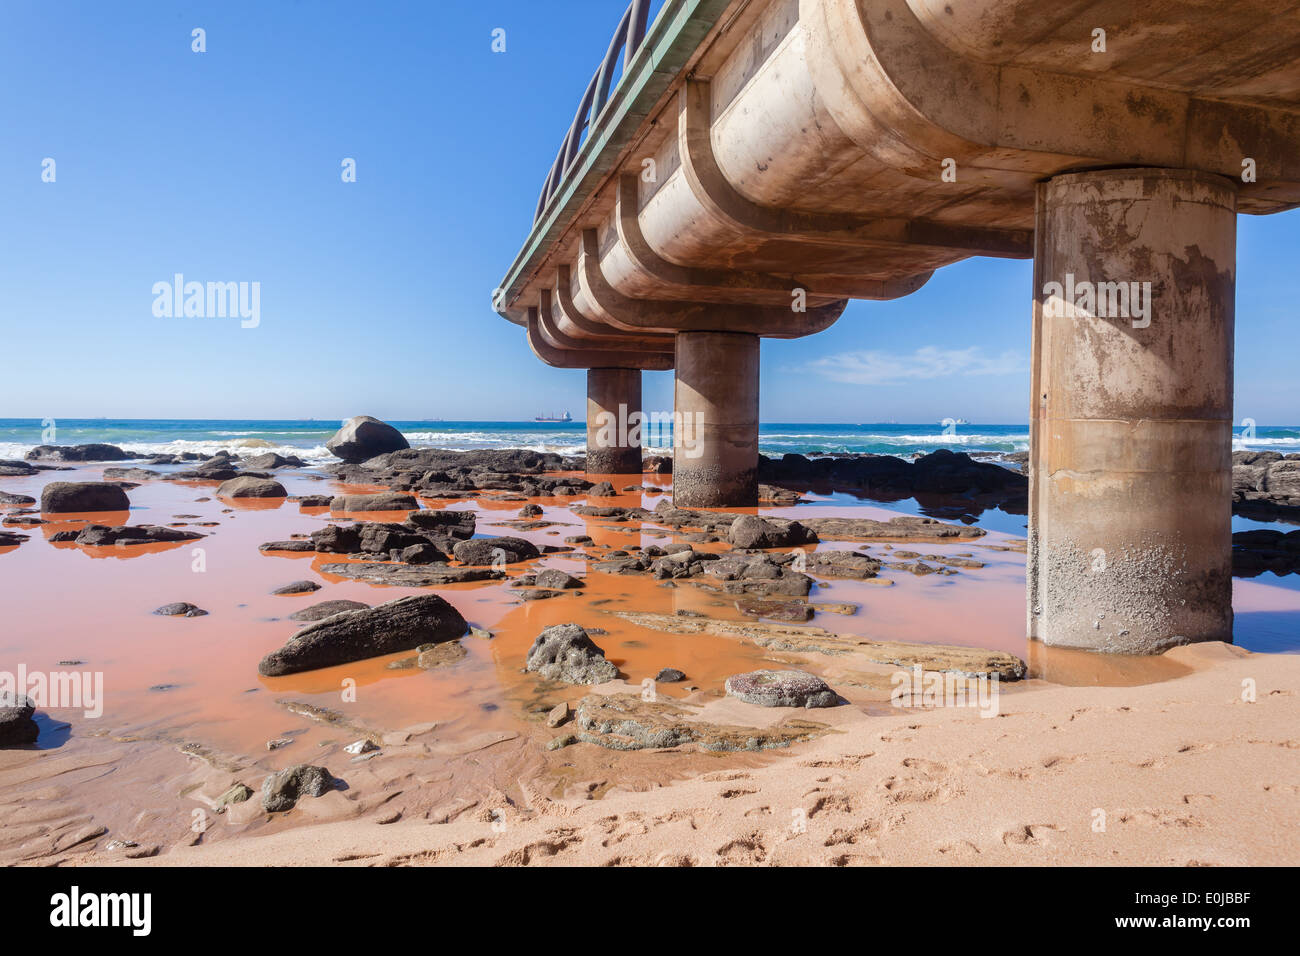 Pollution Industrial water liquid pours out into beach rocks and blue ocean sea waters coastline. - Stock Image